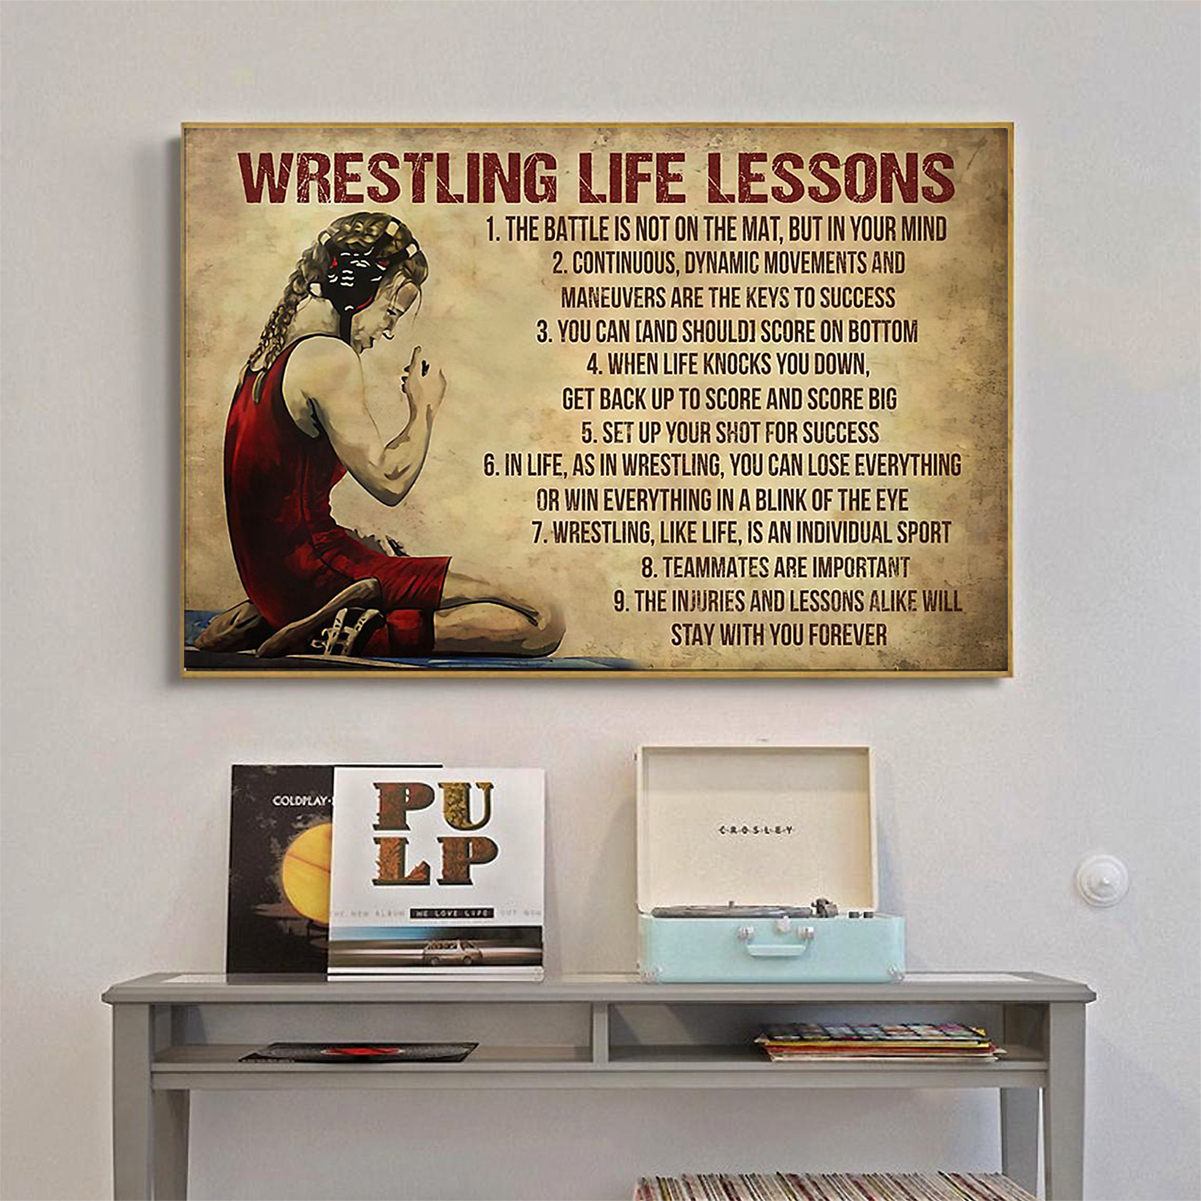 Wrestling life lessons poster A1